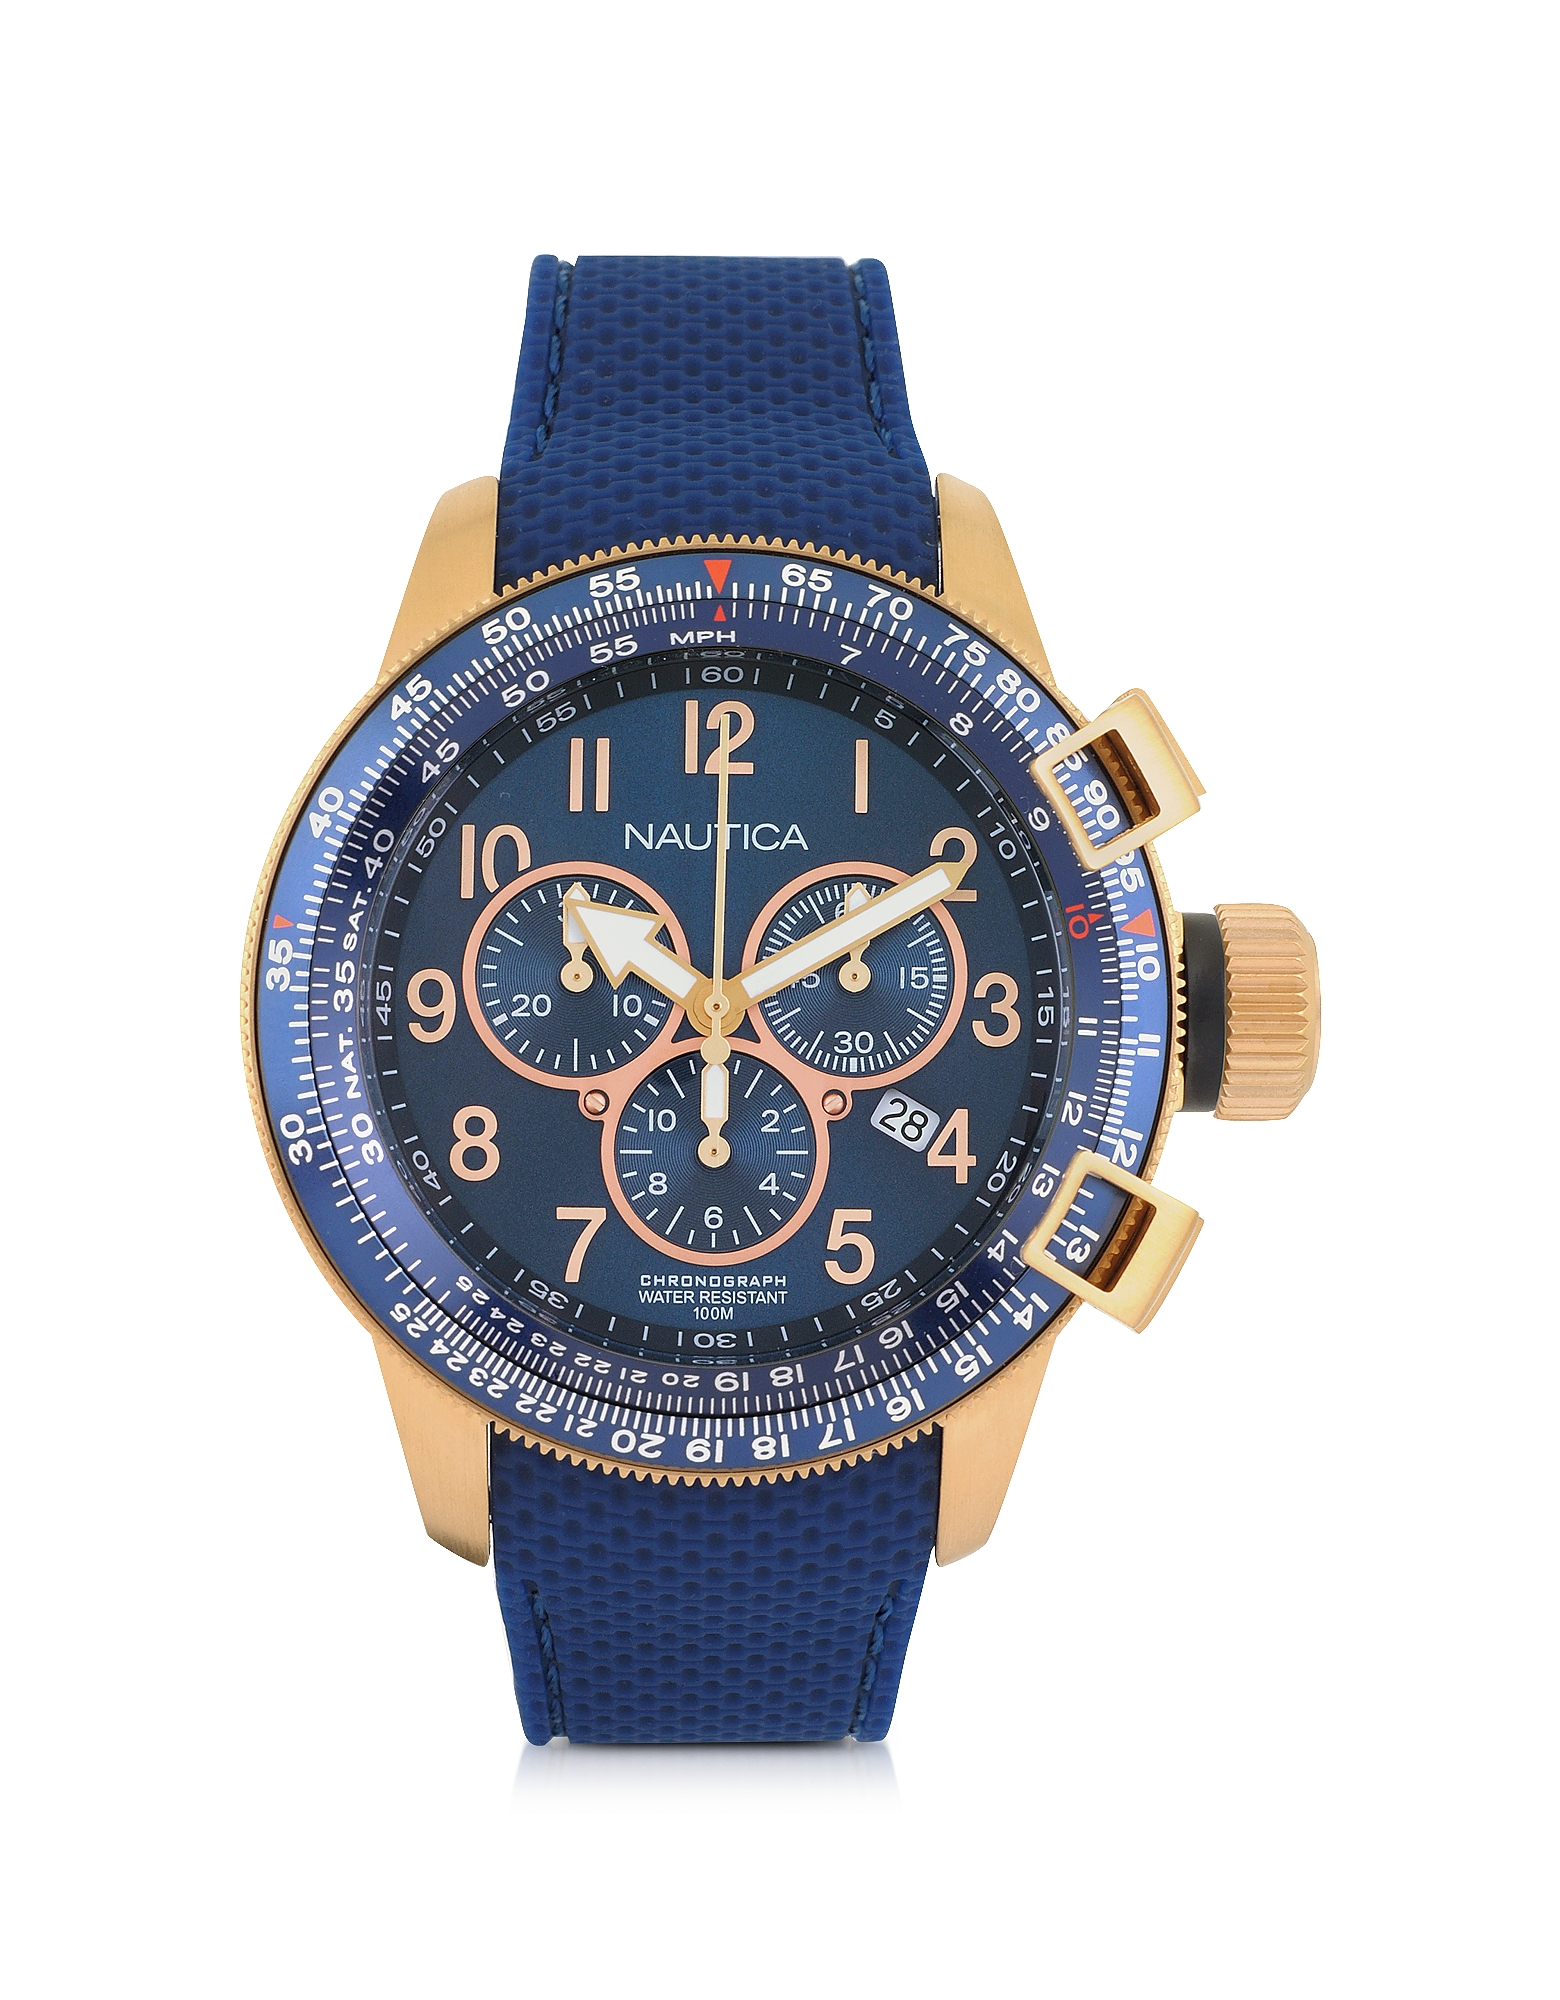 Nautica Men's Watches, Gold Tone Stainless Steel Case and Blue Rubber Strap Men's Watch